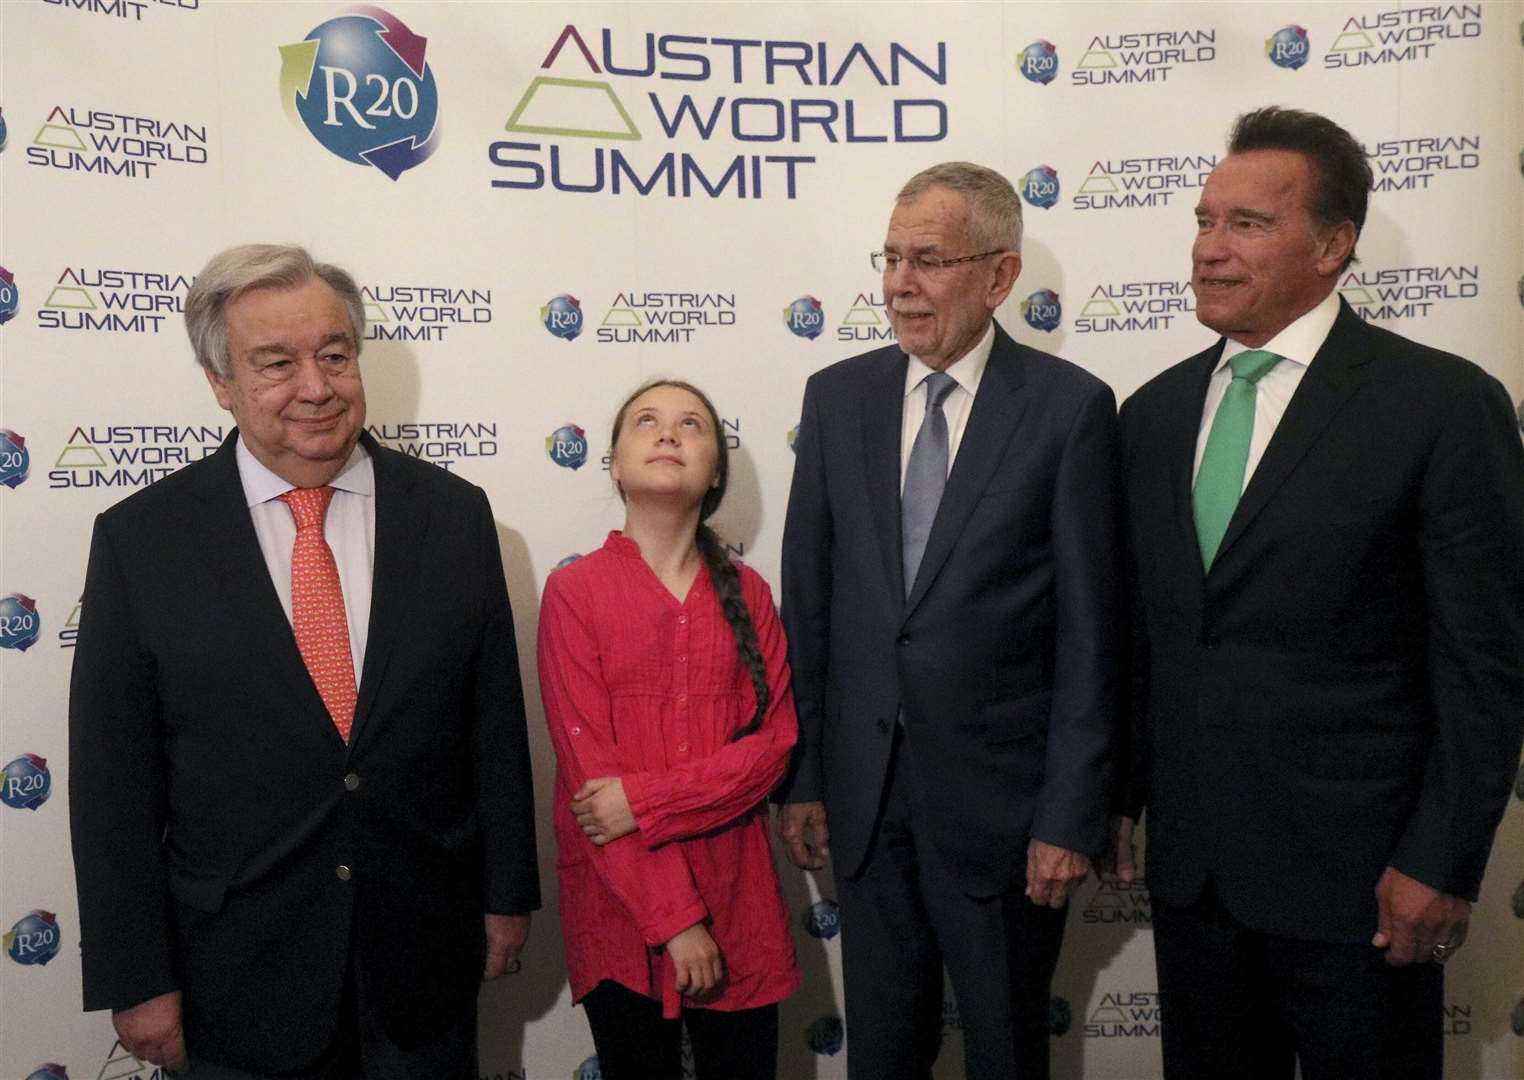 Greta Thunberg with UN secretary-general Antonio Guterres, Austrian president Alexander Van der Bellen and former California governor Arnold Schwarzenegger. The teenage environmentalist said this week that politicians wanted pictures with her to make them 'seem like they care' about climate change. Picture: Ronald Zak/AP